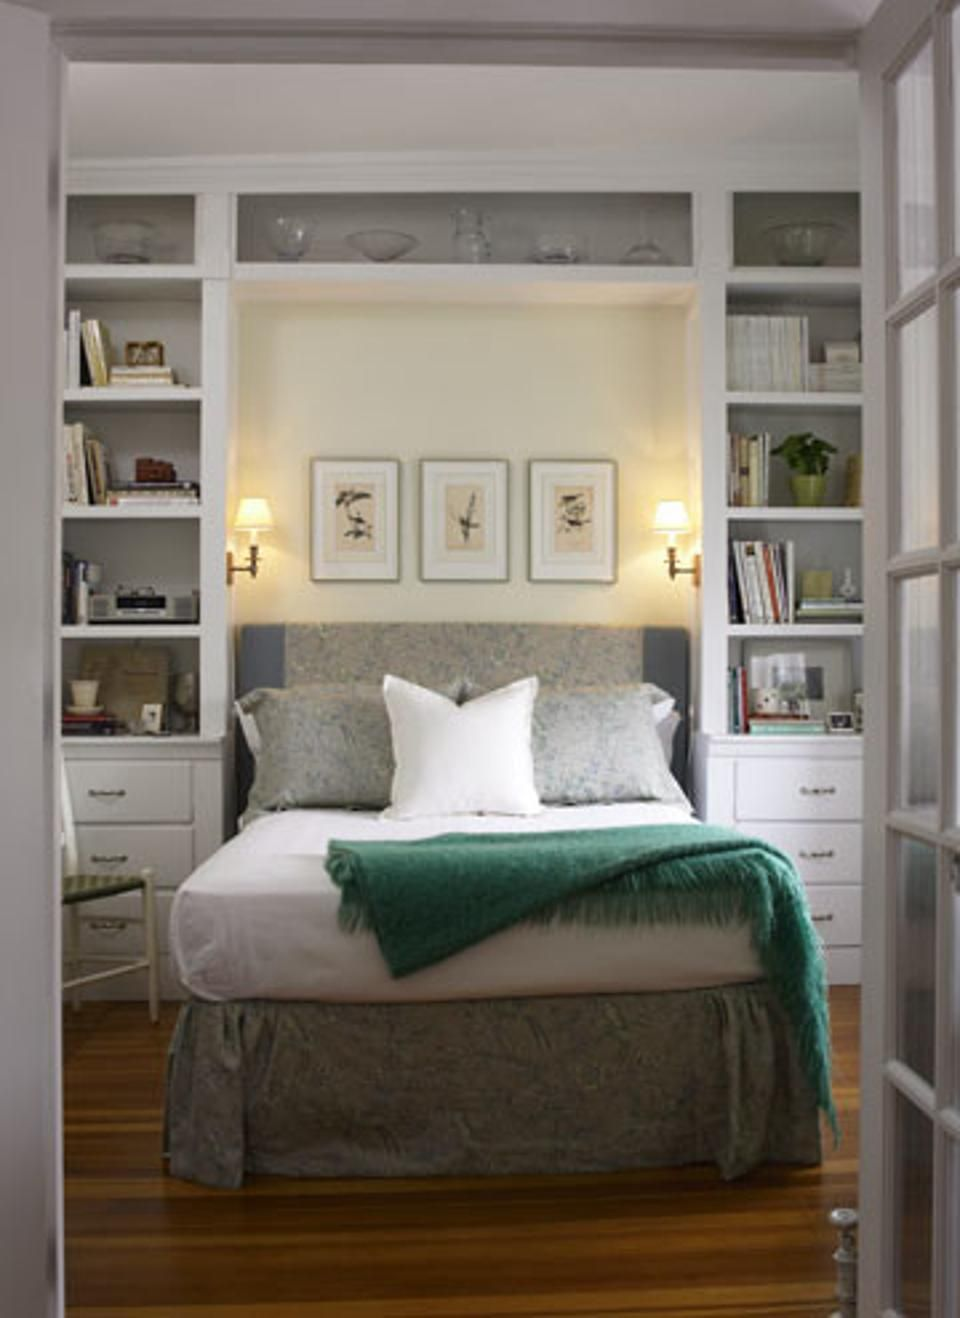 10 Tips To Make A Small Bedroom Look Great Traditional Bedroom Remodel Bedroom Small Bedroom